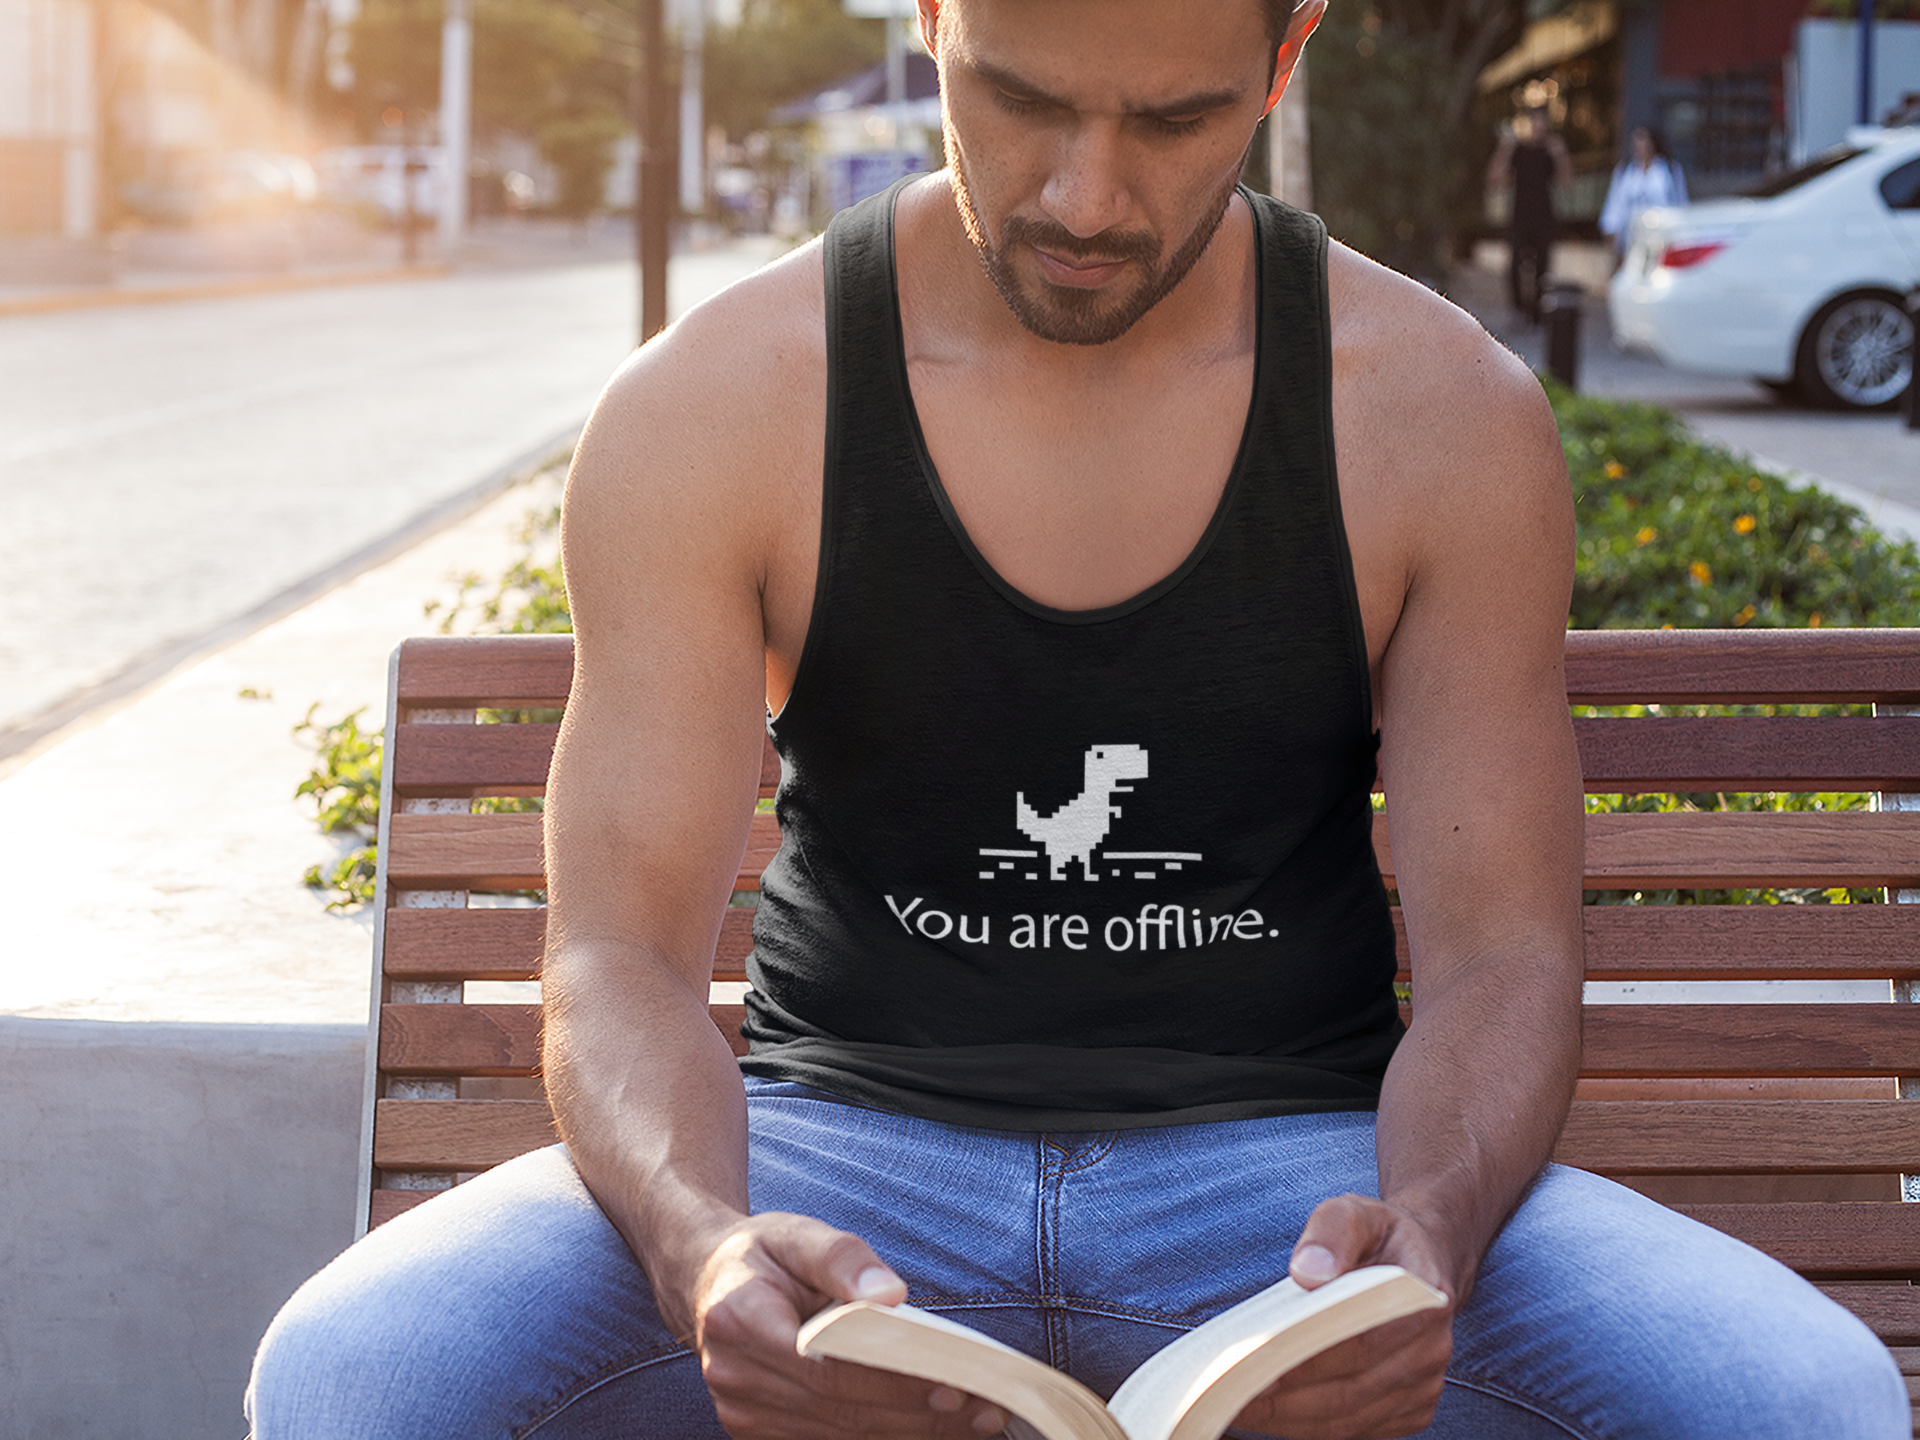 You are offline tank top